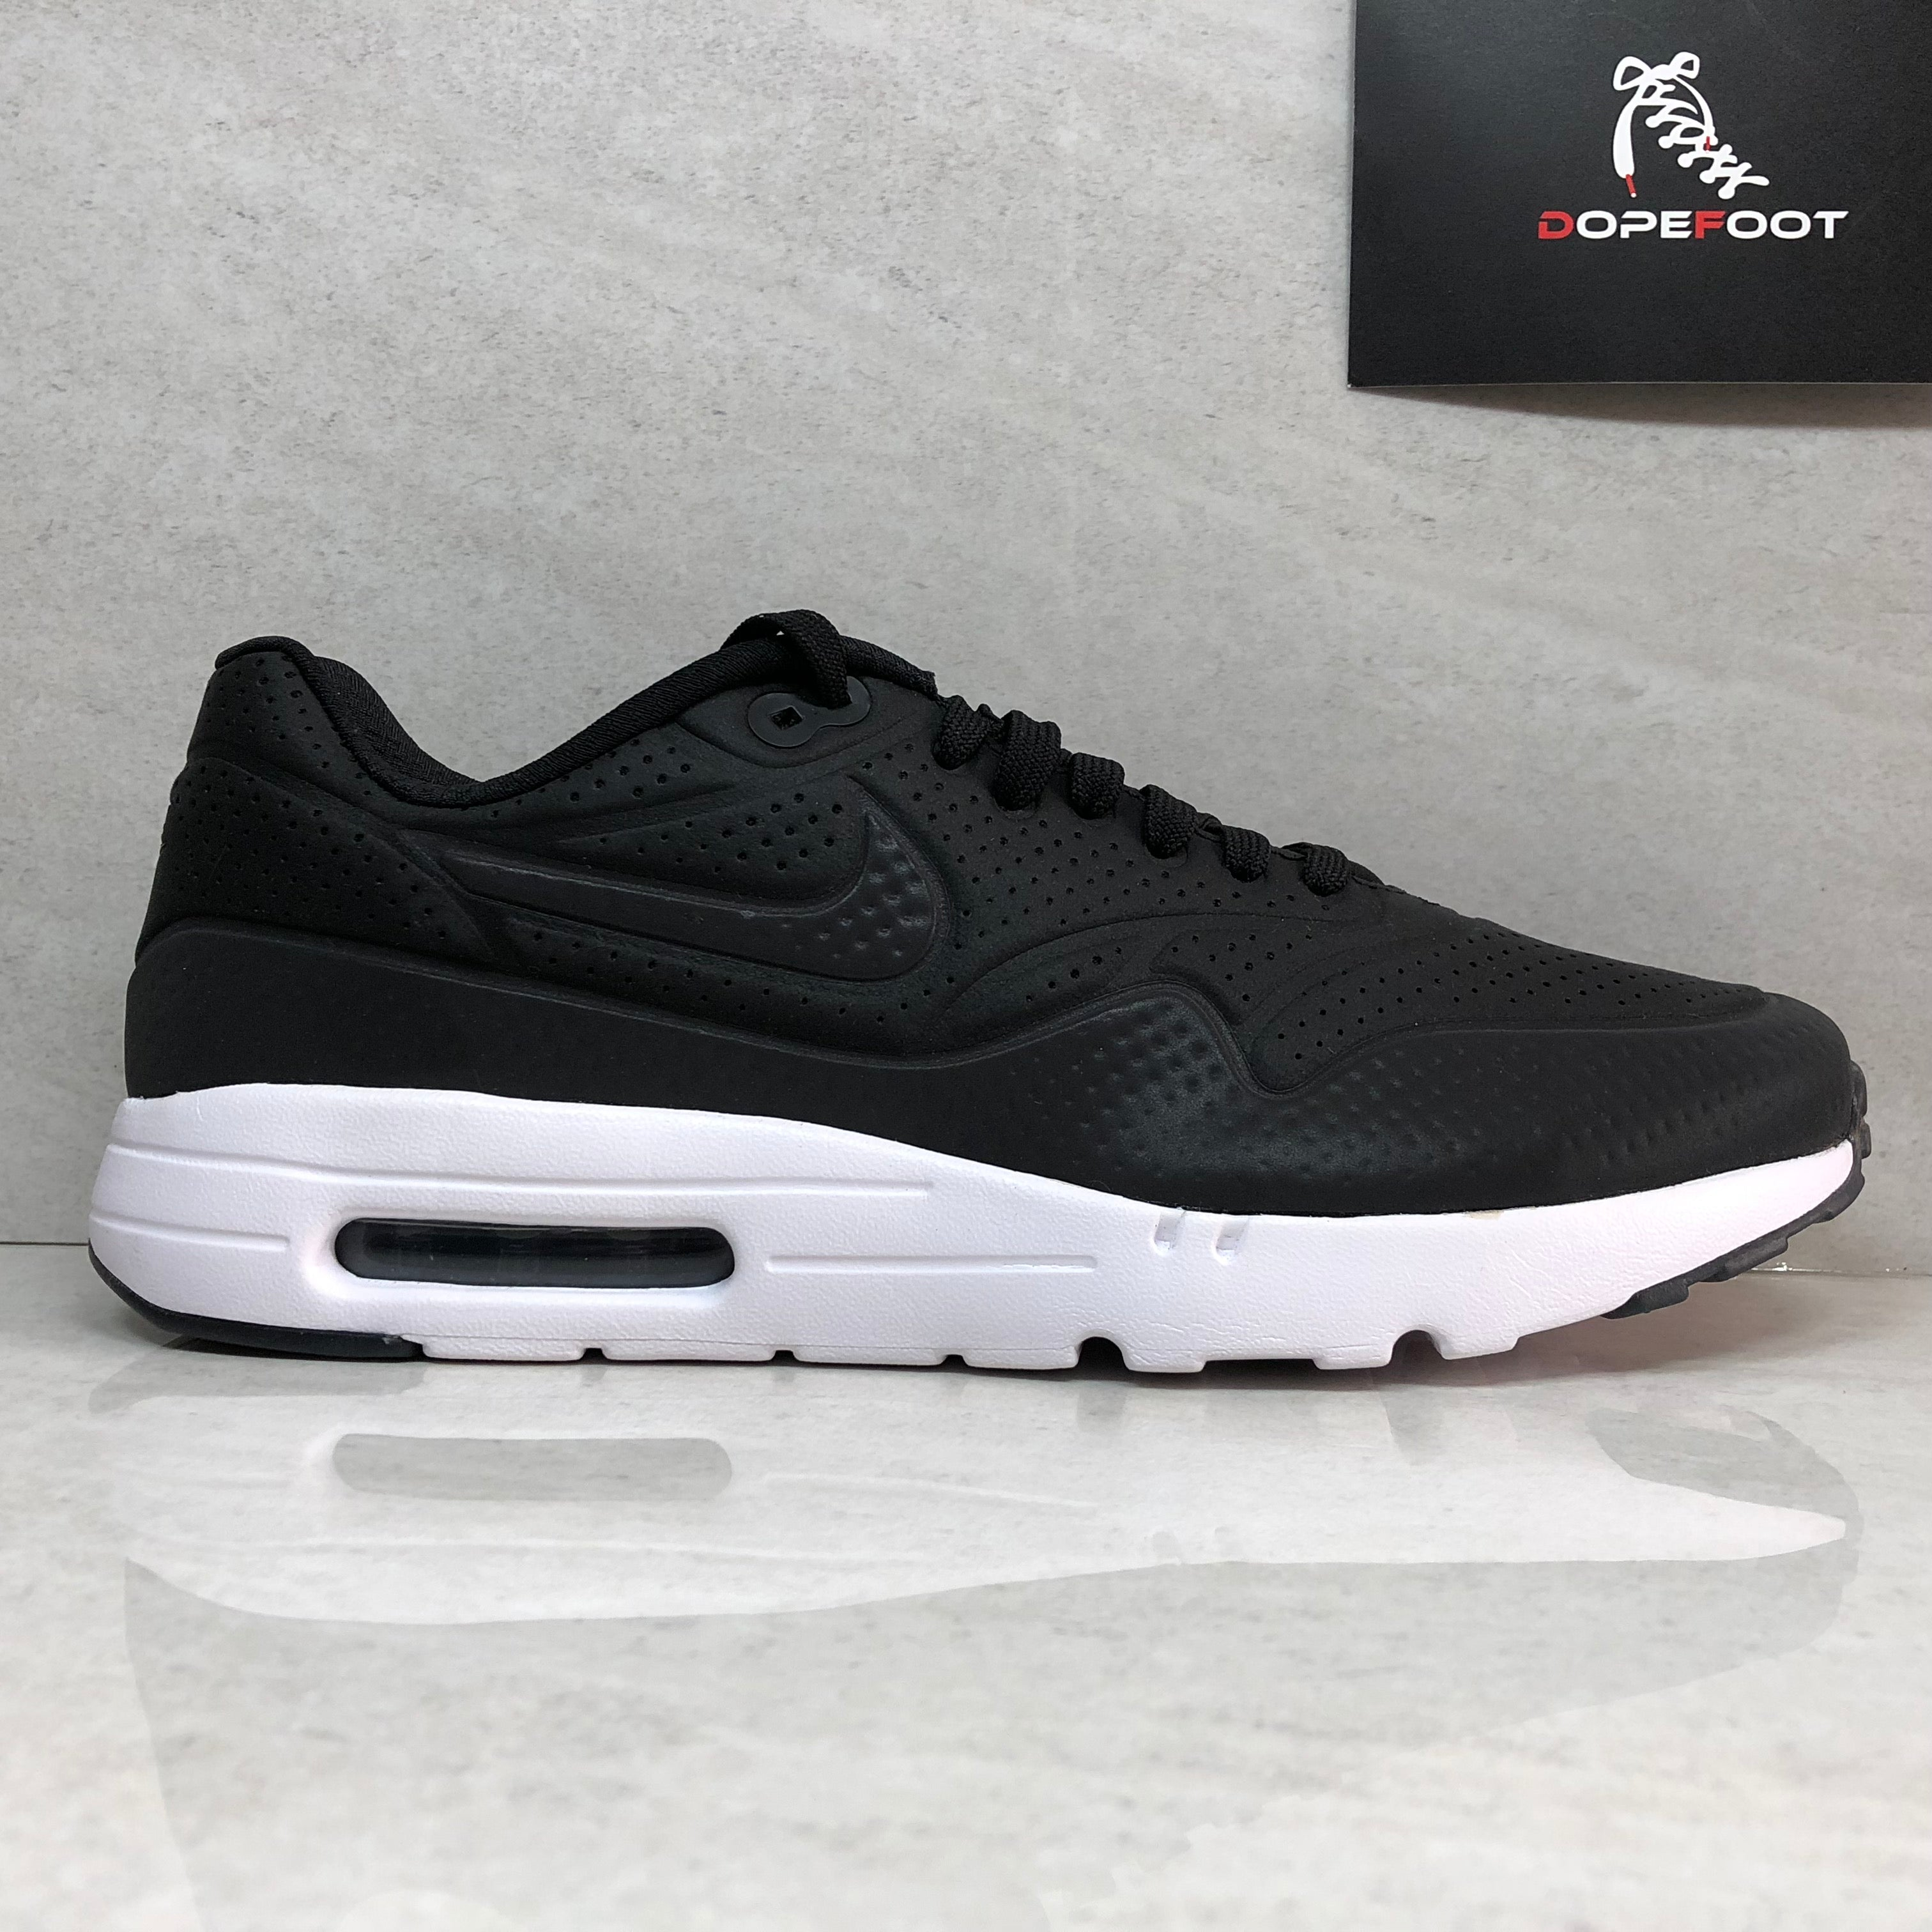 Nike Mens Air Max 1 Ultra Moire 705297-013 Black/White Size 8.5/Size 9.5/Size 10